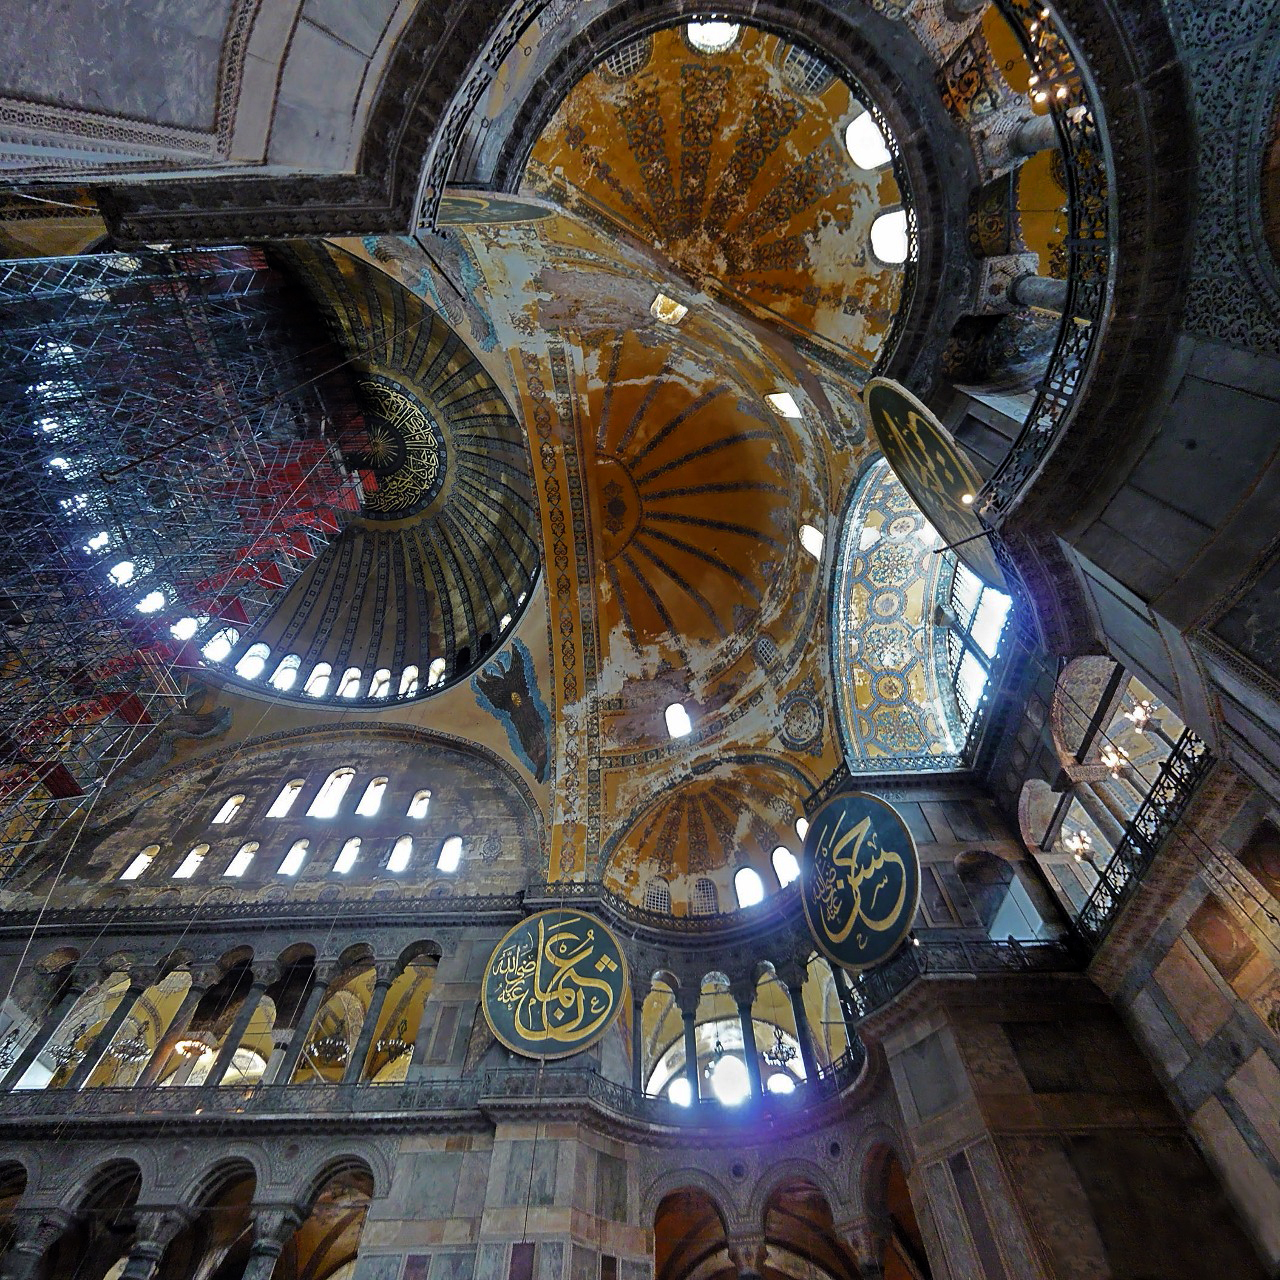 The central dome and supporting pendentives of the Hagia Sophia, Istanbul. Constructed in the reign of Emperor Justinian in an astonishing five and a half years (wikimedia commons).